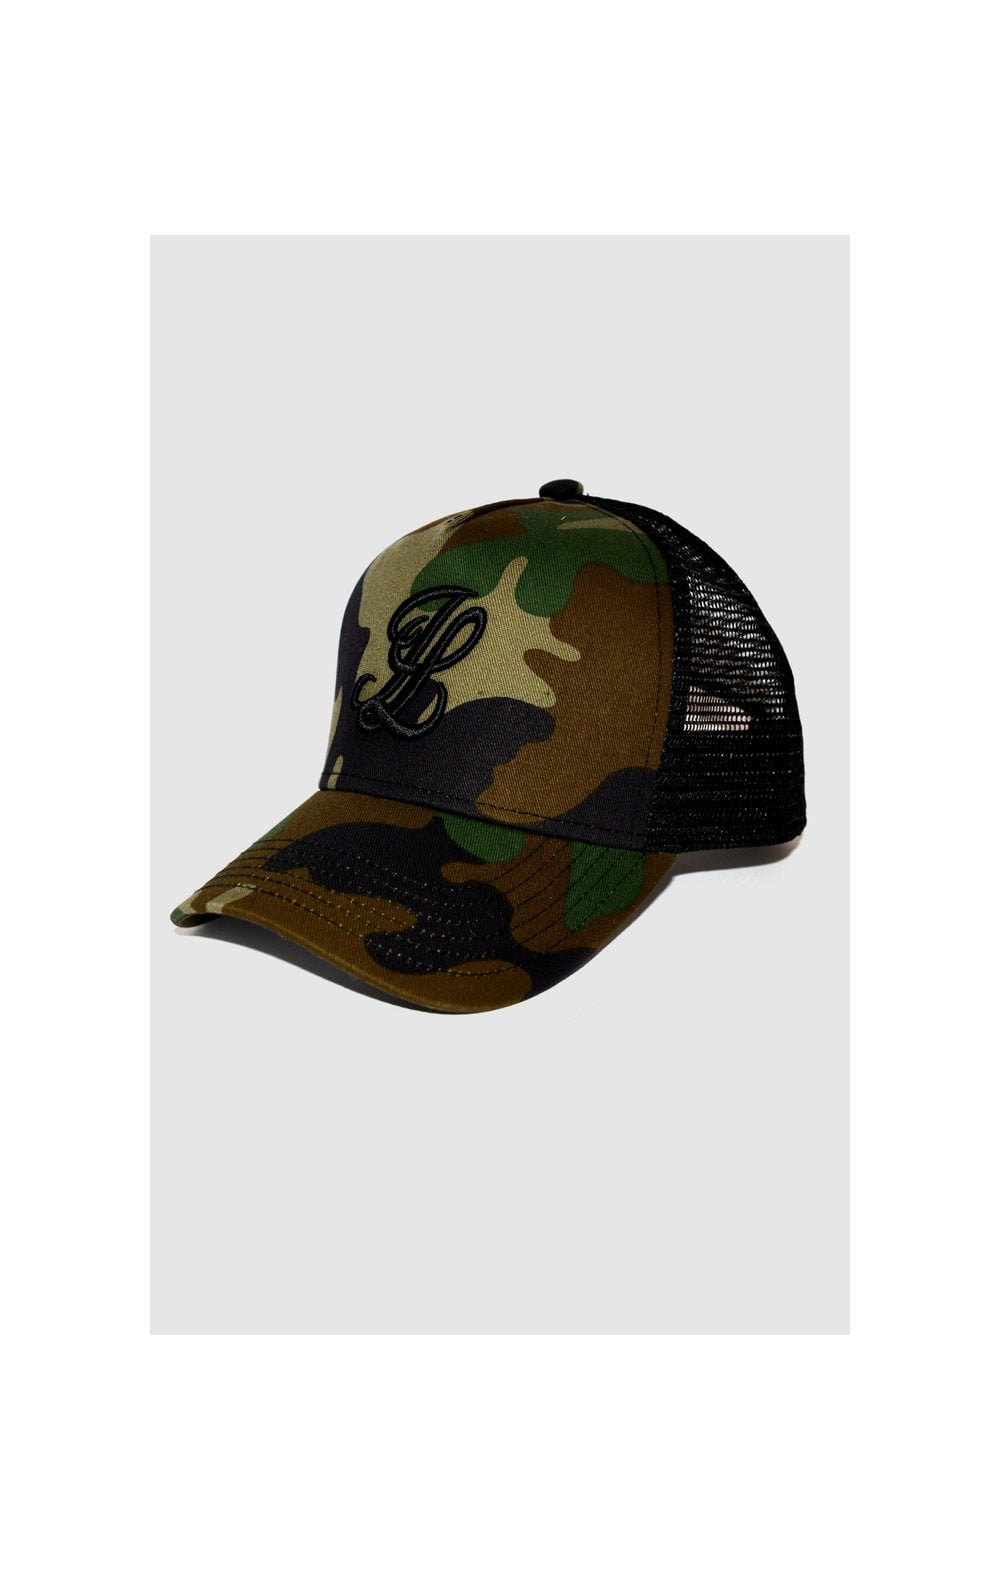 Load image into Gallery viewer, Illusive London Bent Peak Trucker - Black & Camo